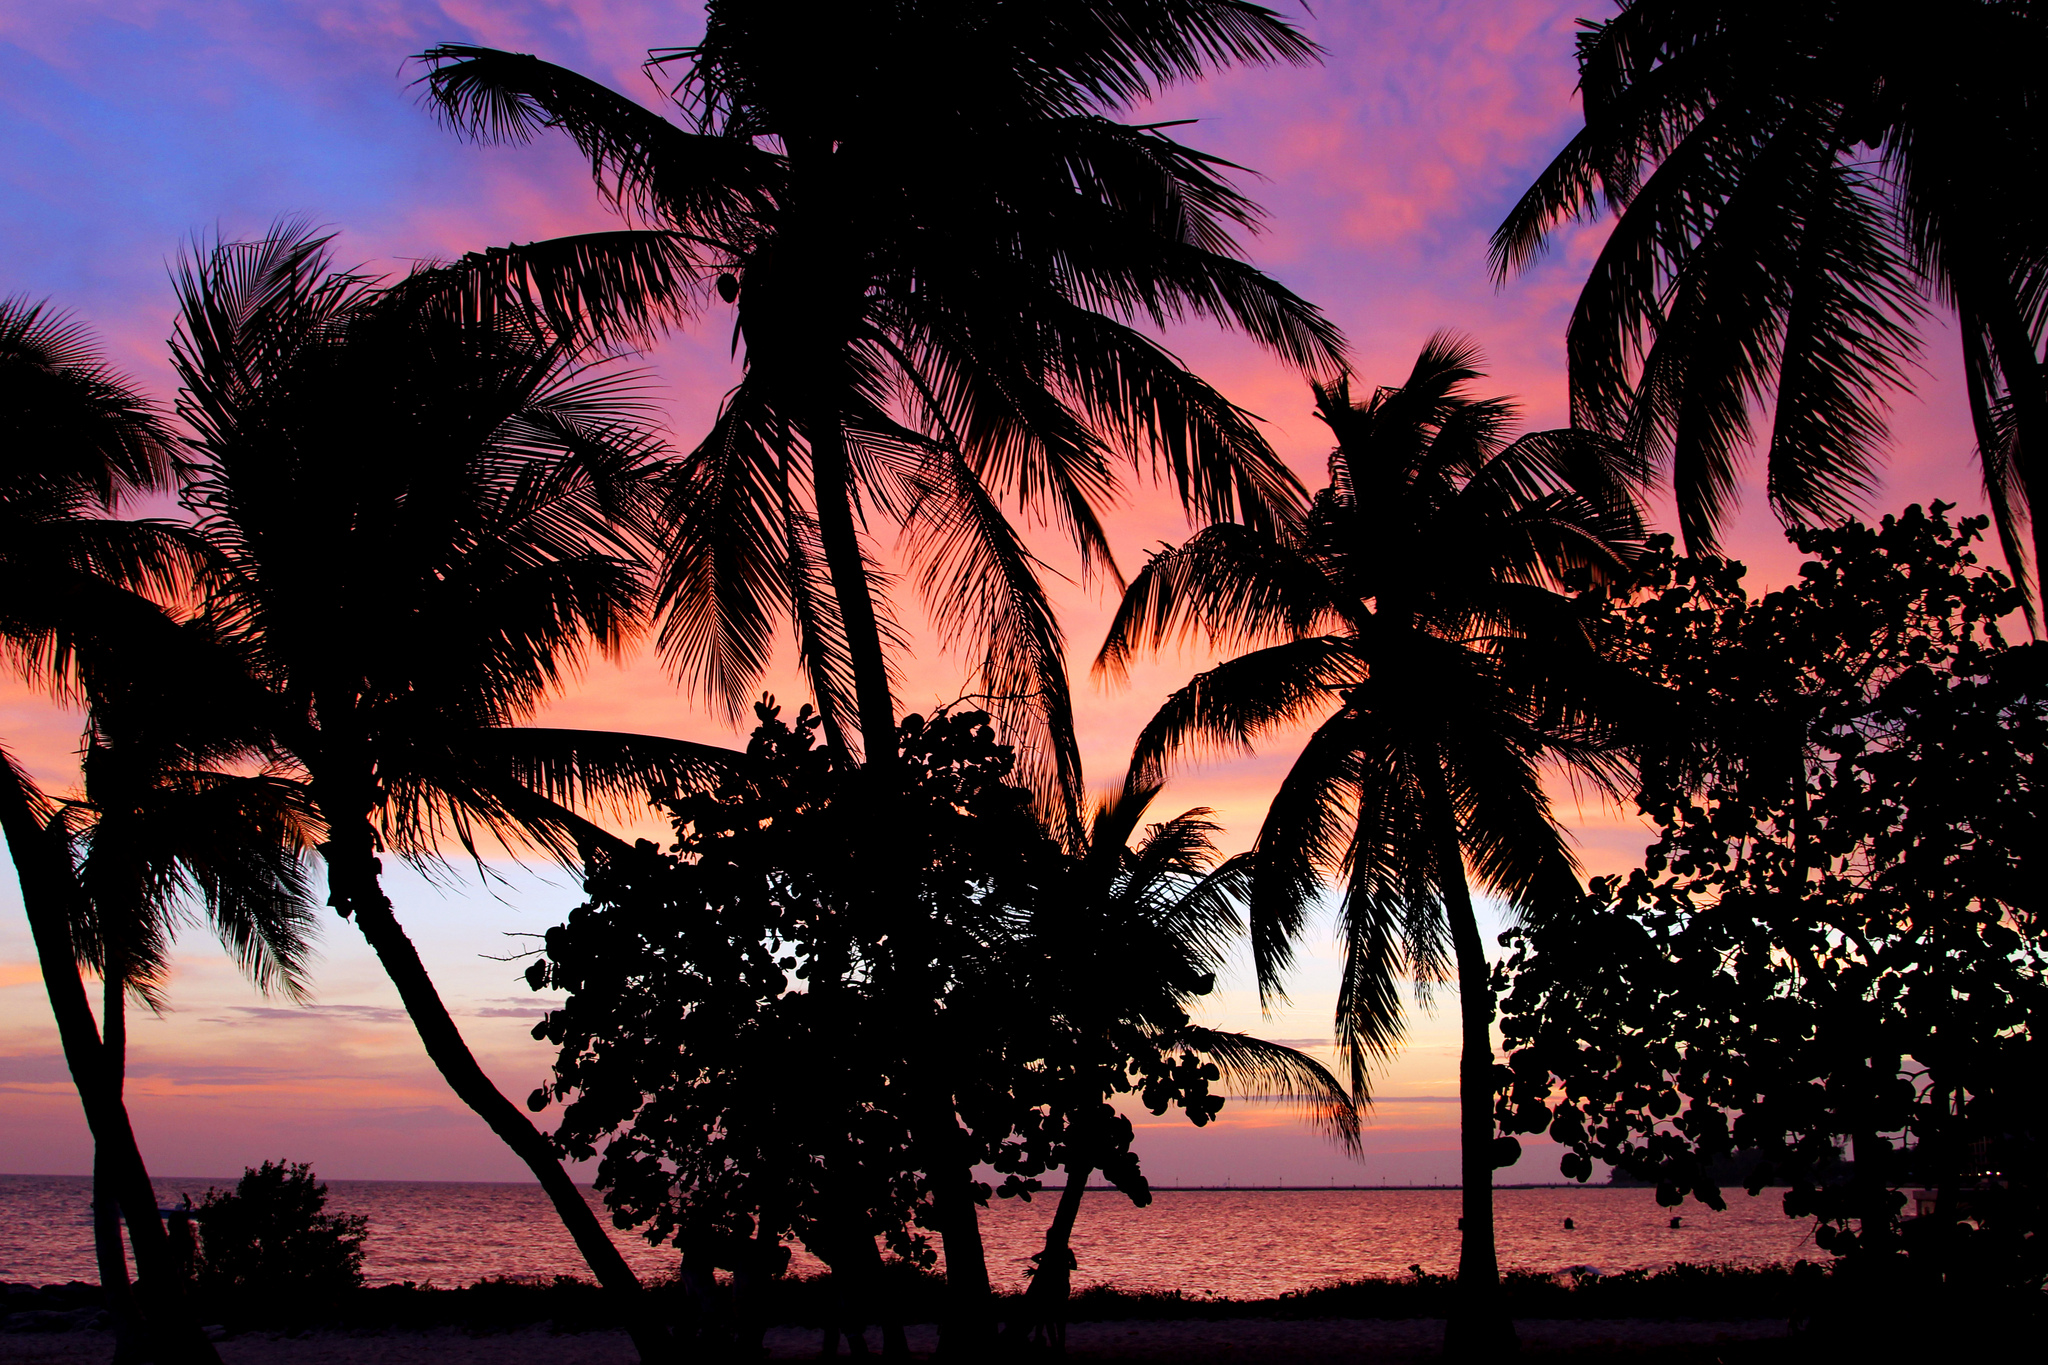 Key West sunset by W. Tipton